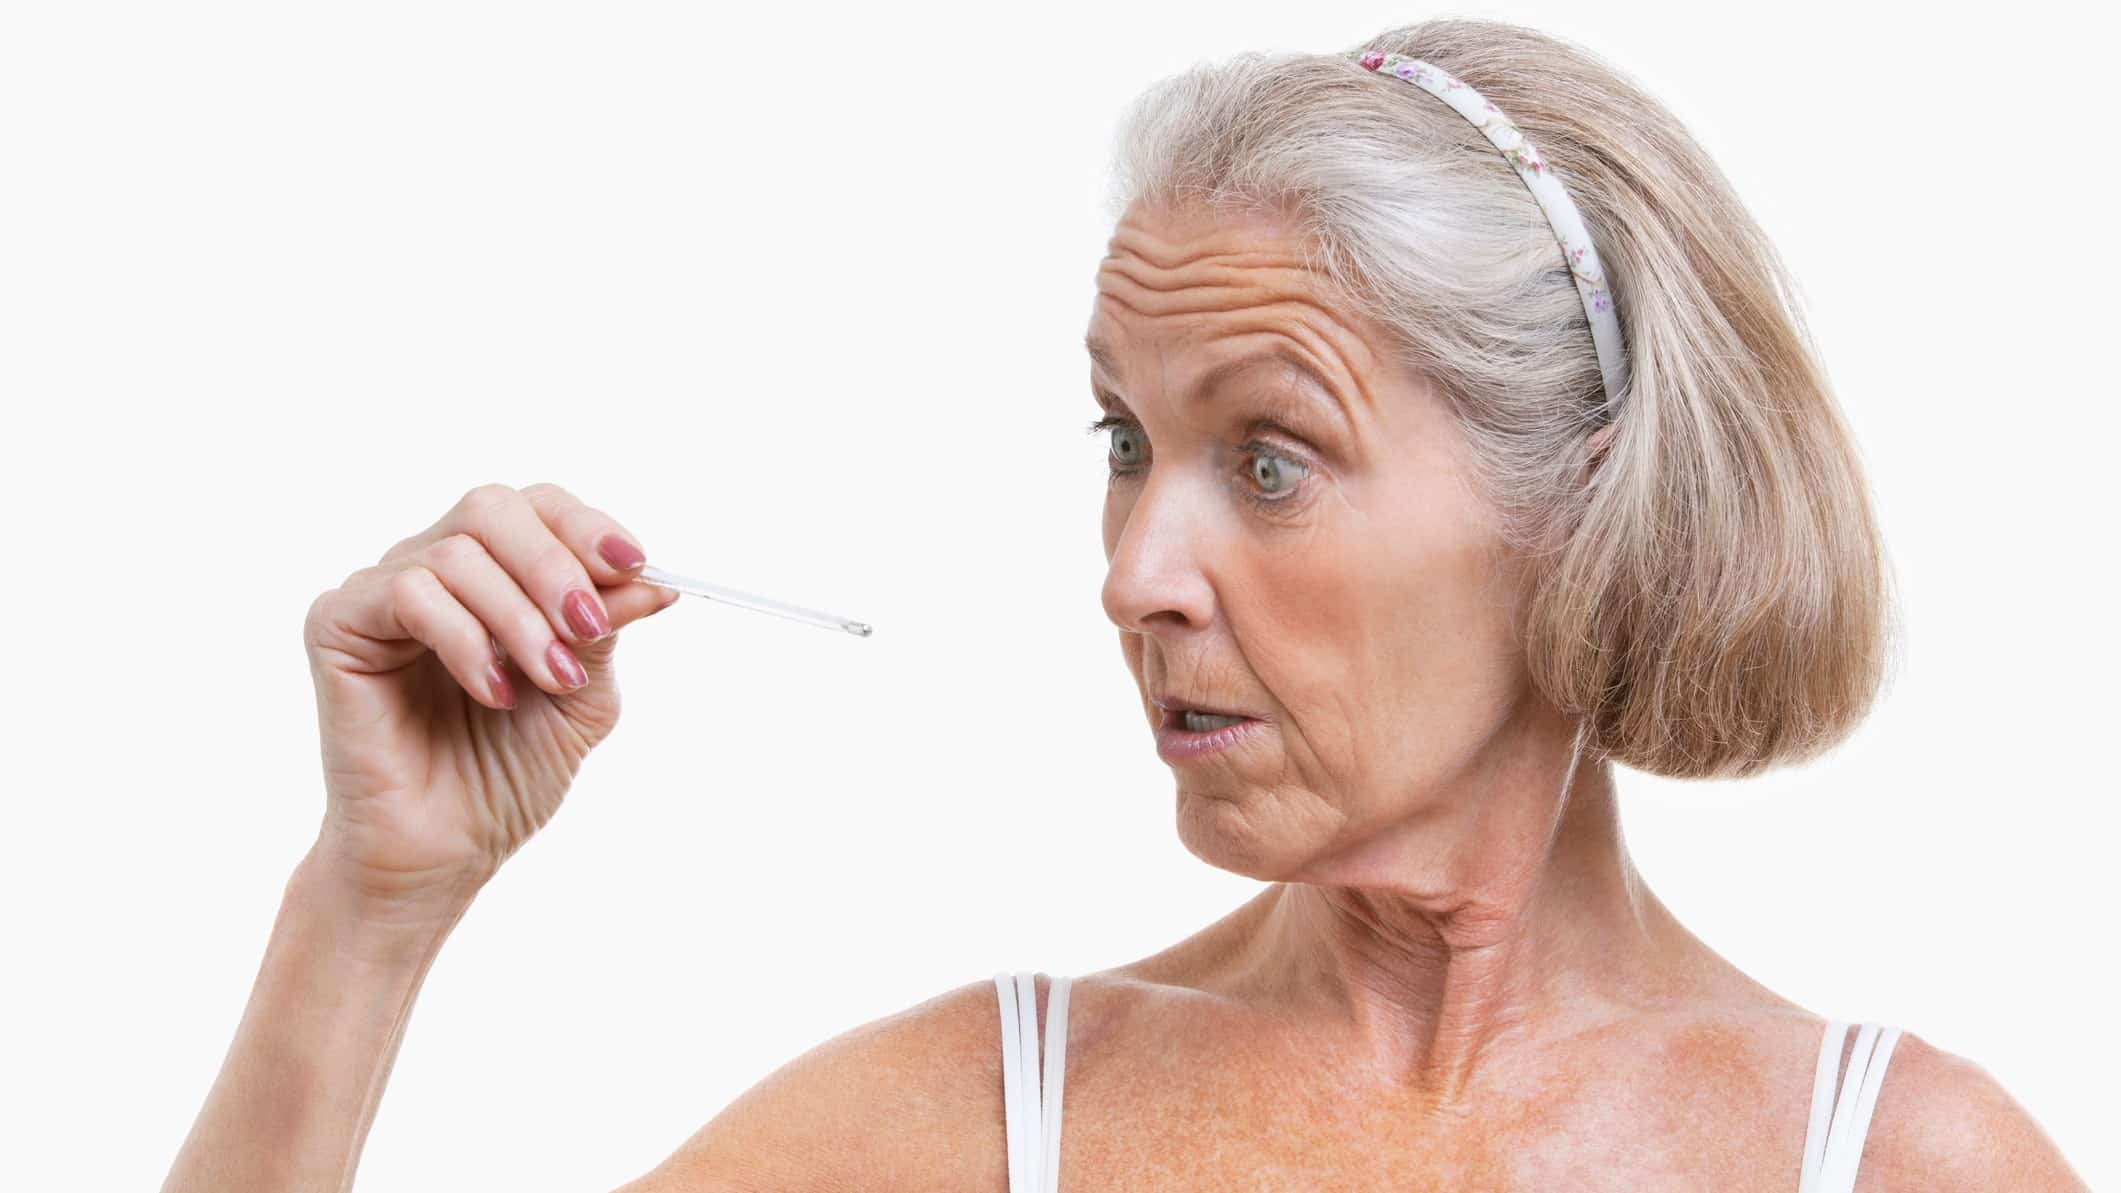 A woman looks surprised as she checks an old-fashion thermometer, indicating a change in share price moevement for biotech companies